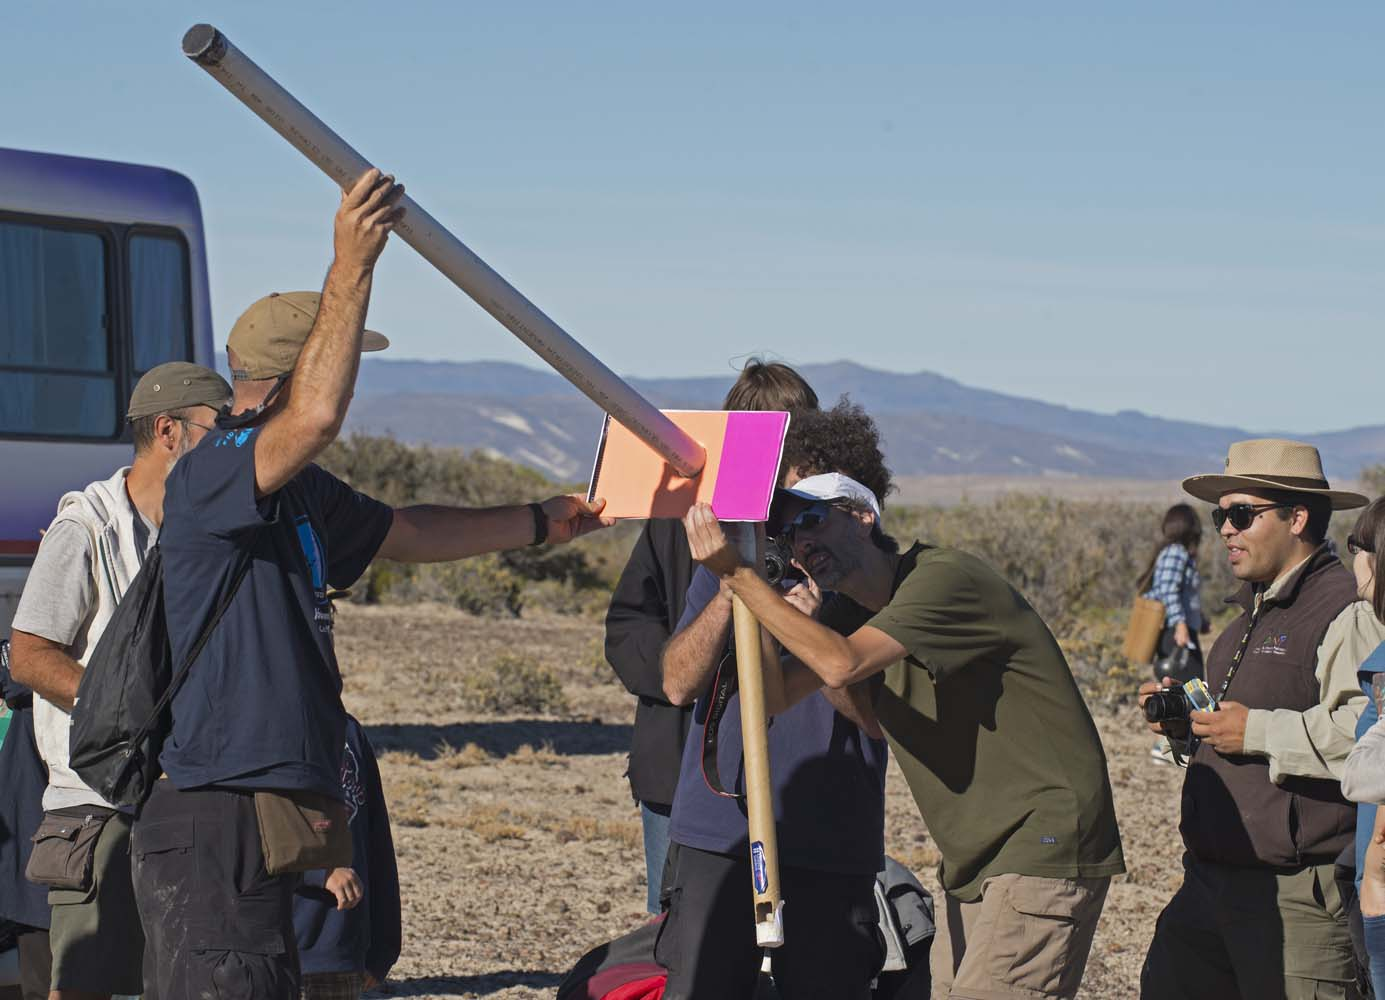 """Picture taken on February 26, 2017 showing people preparing to see an annular solar eclipse, at the Estancia El Muster, near Sarmiento, Chubut province, 1600 km south of Buenos Aires, Argentina, on February 26, 2017. Stargazers applauded as they were plunged into darkness Sunday when the moon passed in front of the sun in a spectacular """"ring of fire"""" eclipse. / AFP PHOTO / ALEJANDRO PAGNI"""